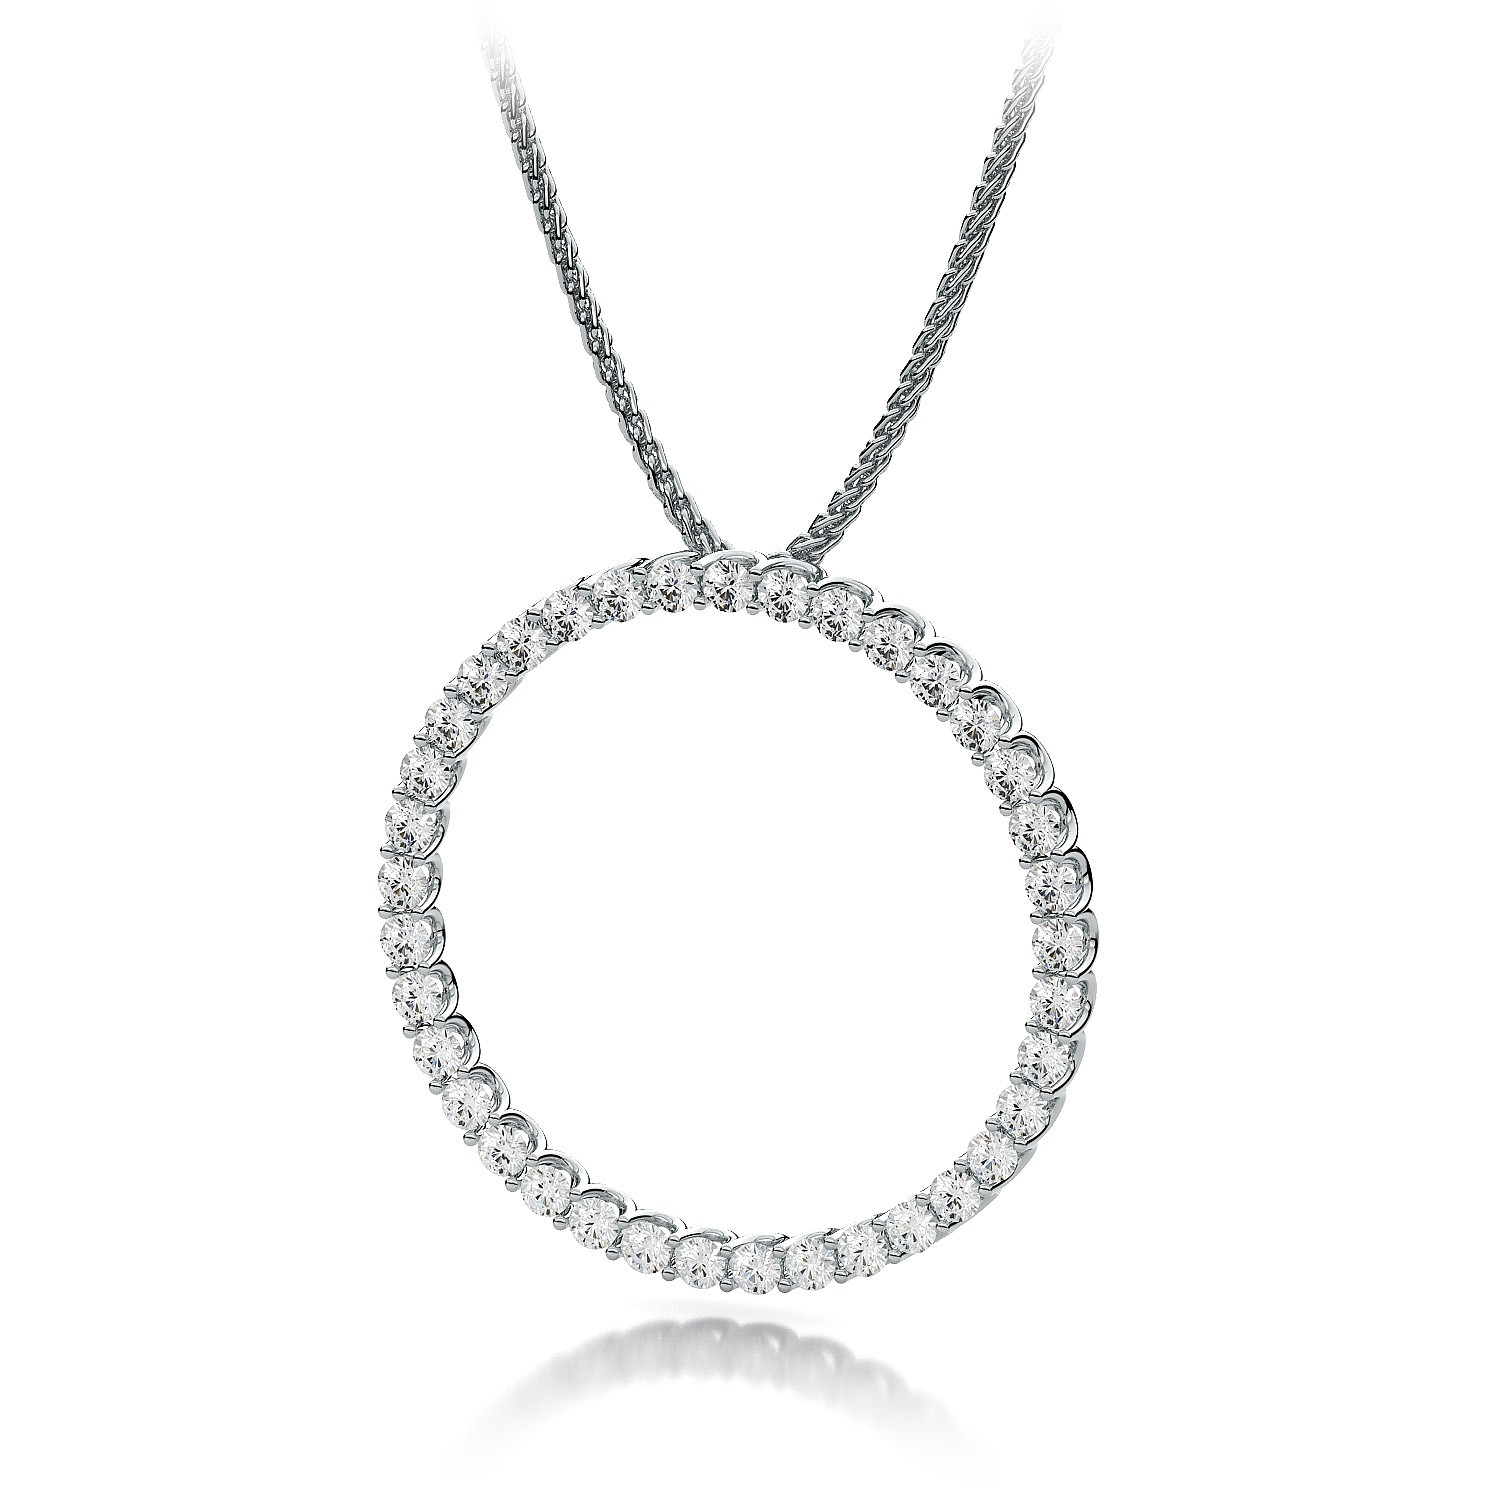 jeweler cushion diamond img pendant with shop necklaces white alpharetta halo iroff gold best